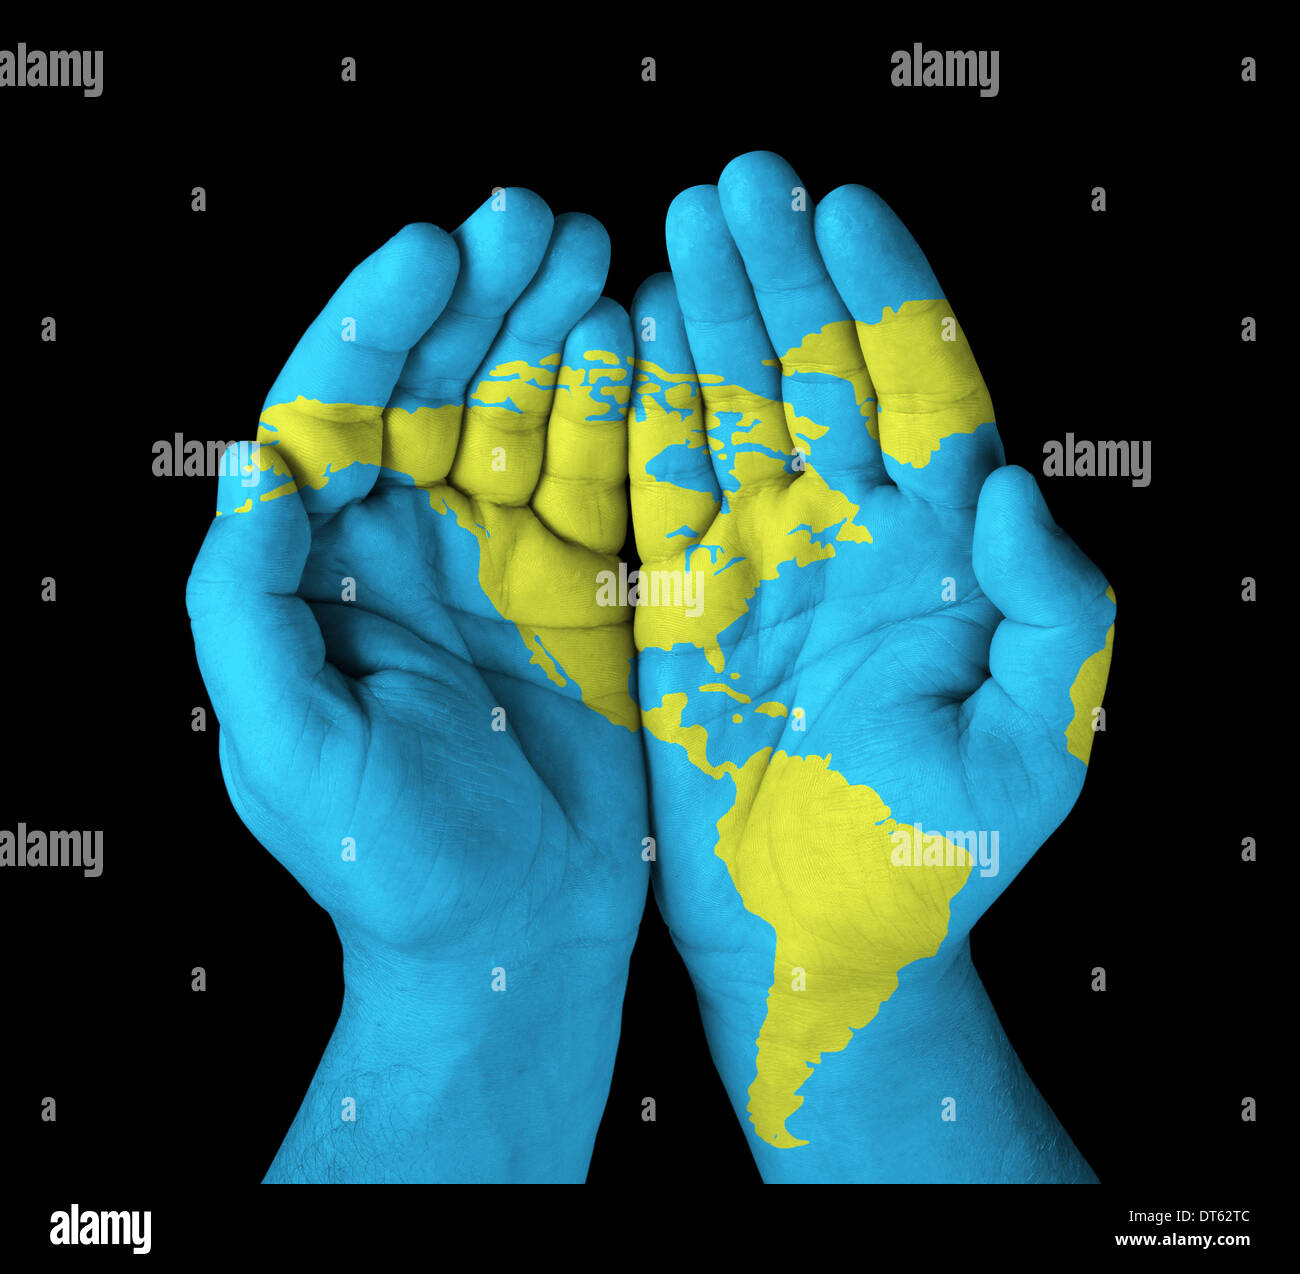 World map painted on hands stock photo 66516812 alamy world map painted on hands gumiabroncs Image collections